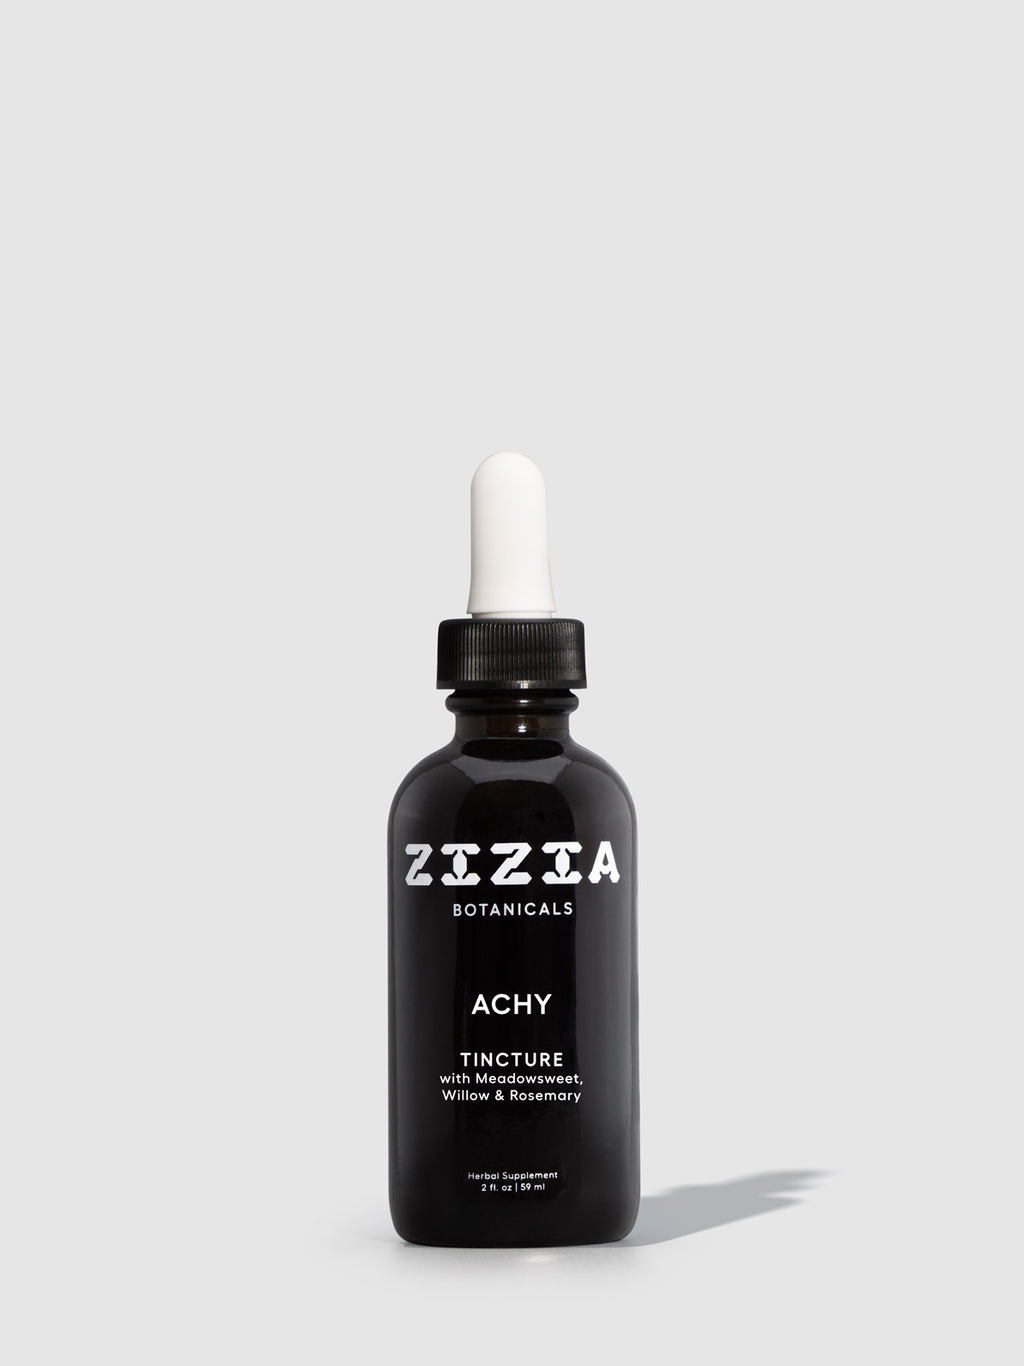 achy tincture, turmeric tincture, zizia, herbal tincture, herbalist, herbs for inflammation, herbs for migraines, migraine herbs, headache relief, cramp relief, home remedies, zizia boanicals, herbal formulated, herbalist los angeles, joint health, aches and pains